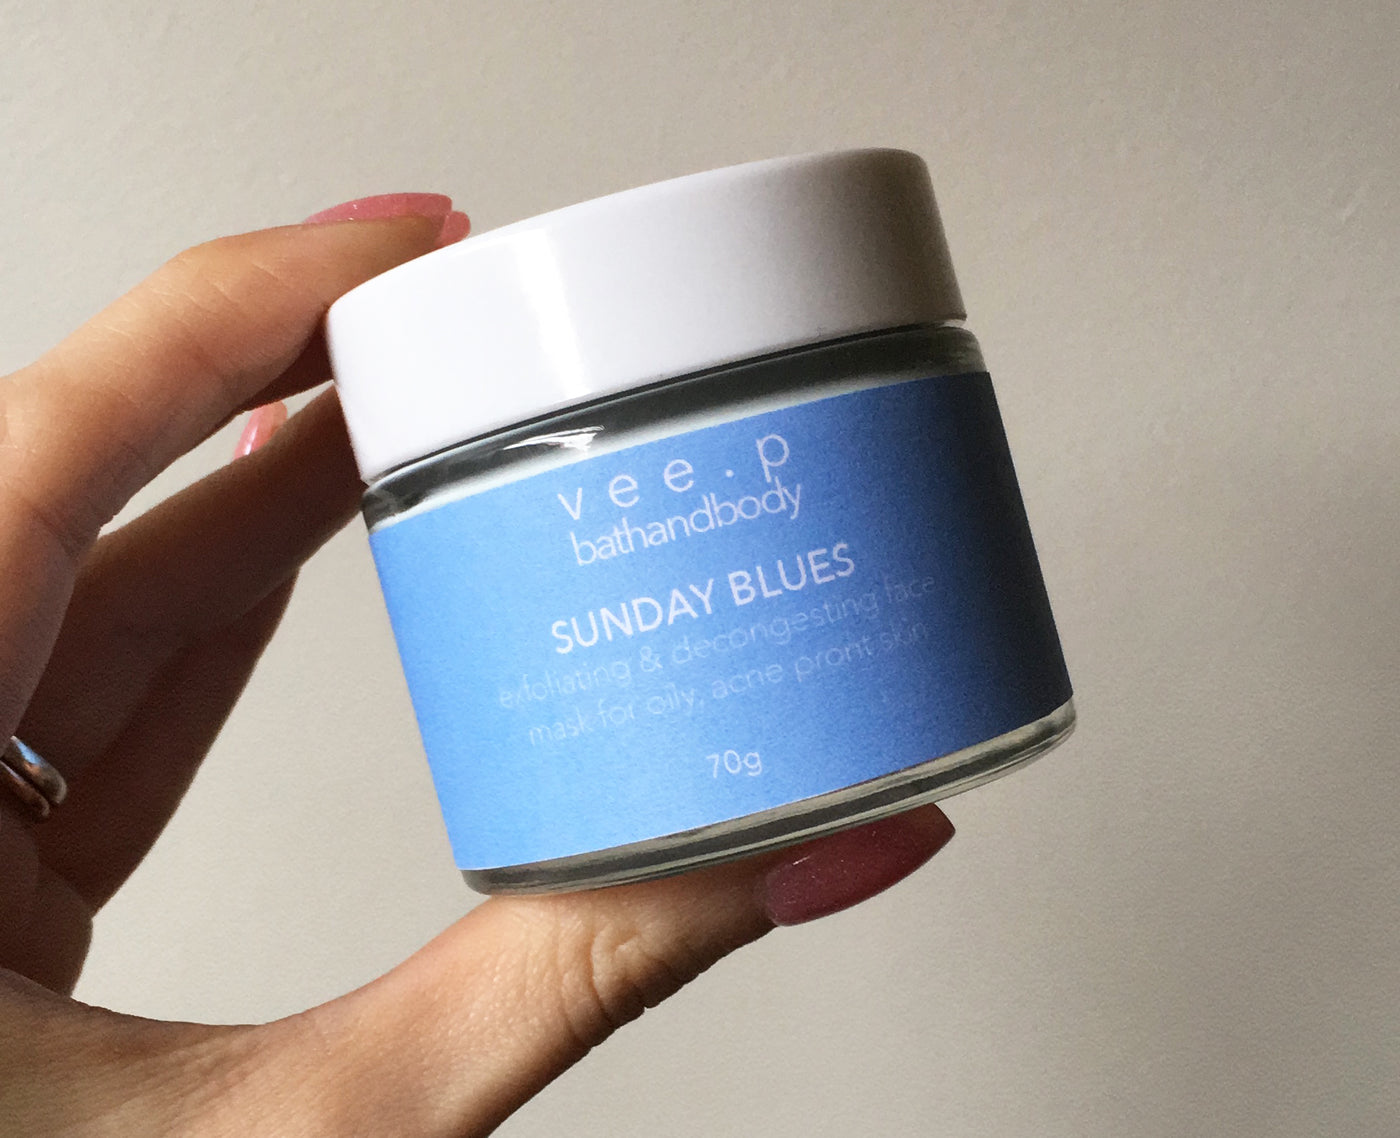 SUNDAY BLUES Brightening & Exfoliating Mask